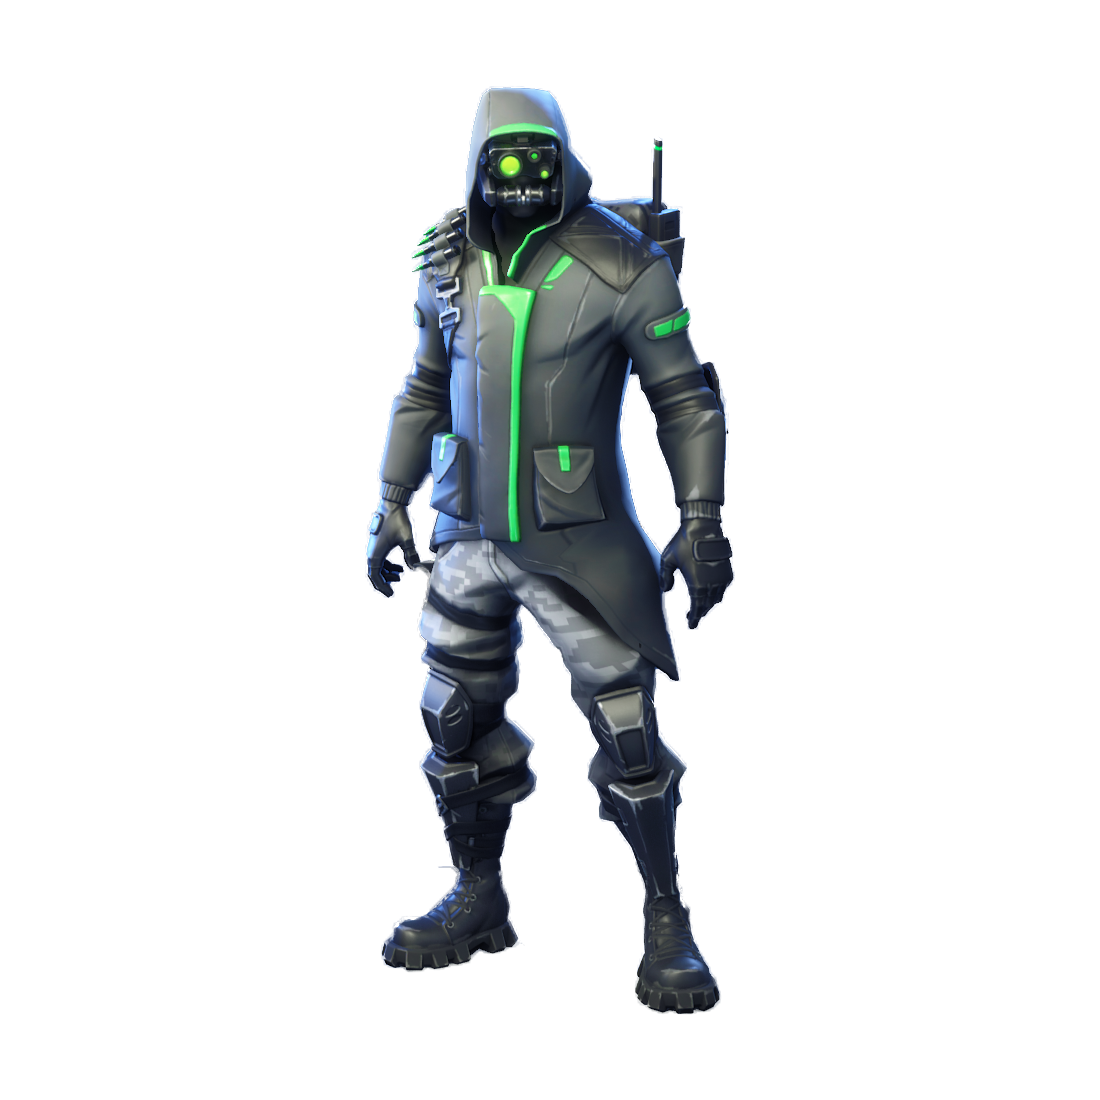 Fortnite Archetype Png Image Skins Characters Archetypes Png Images